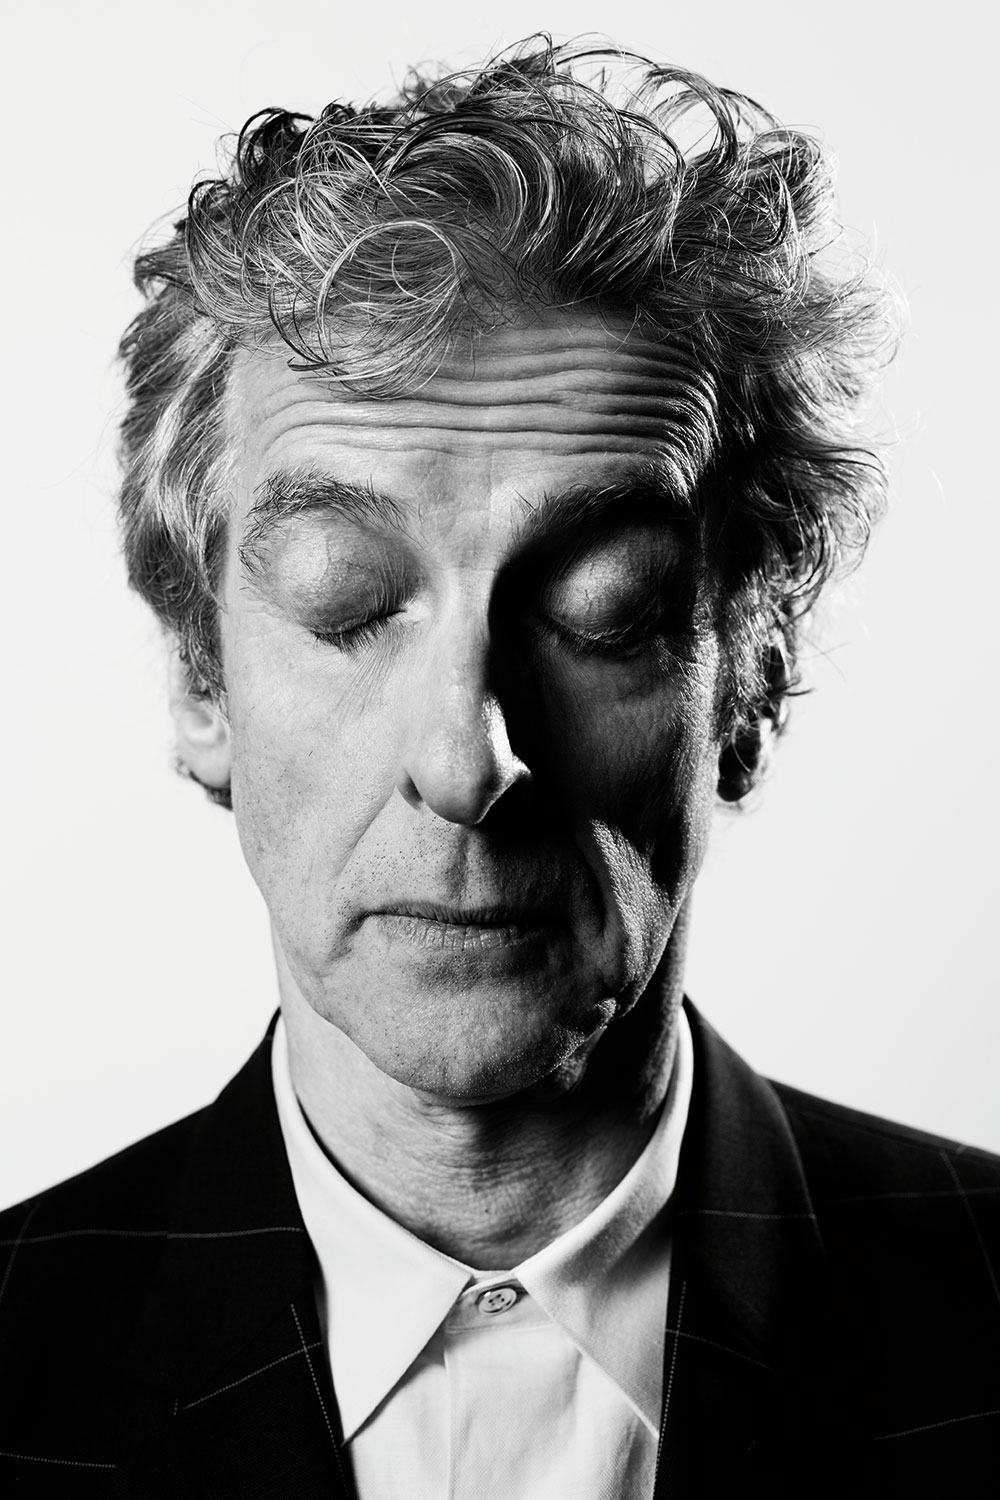 Peter capaldi with eyes shut